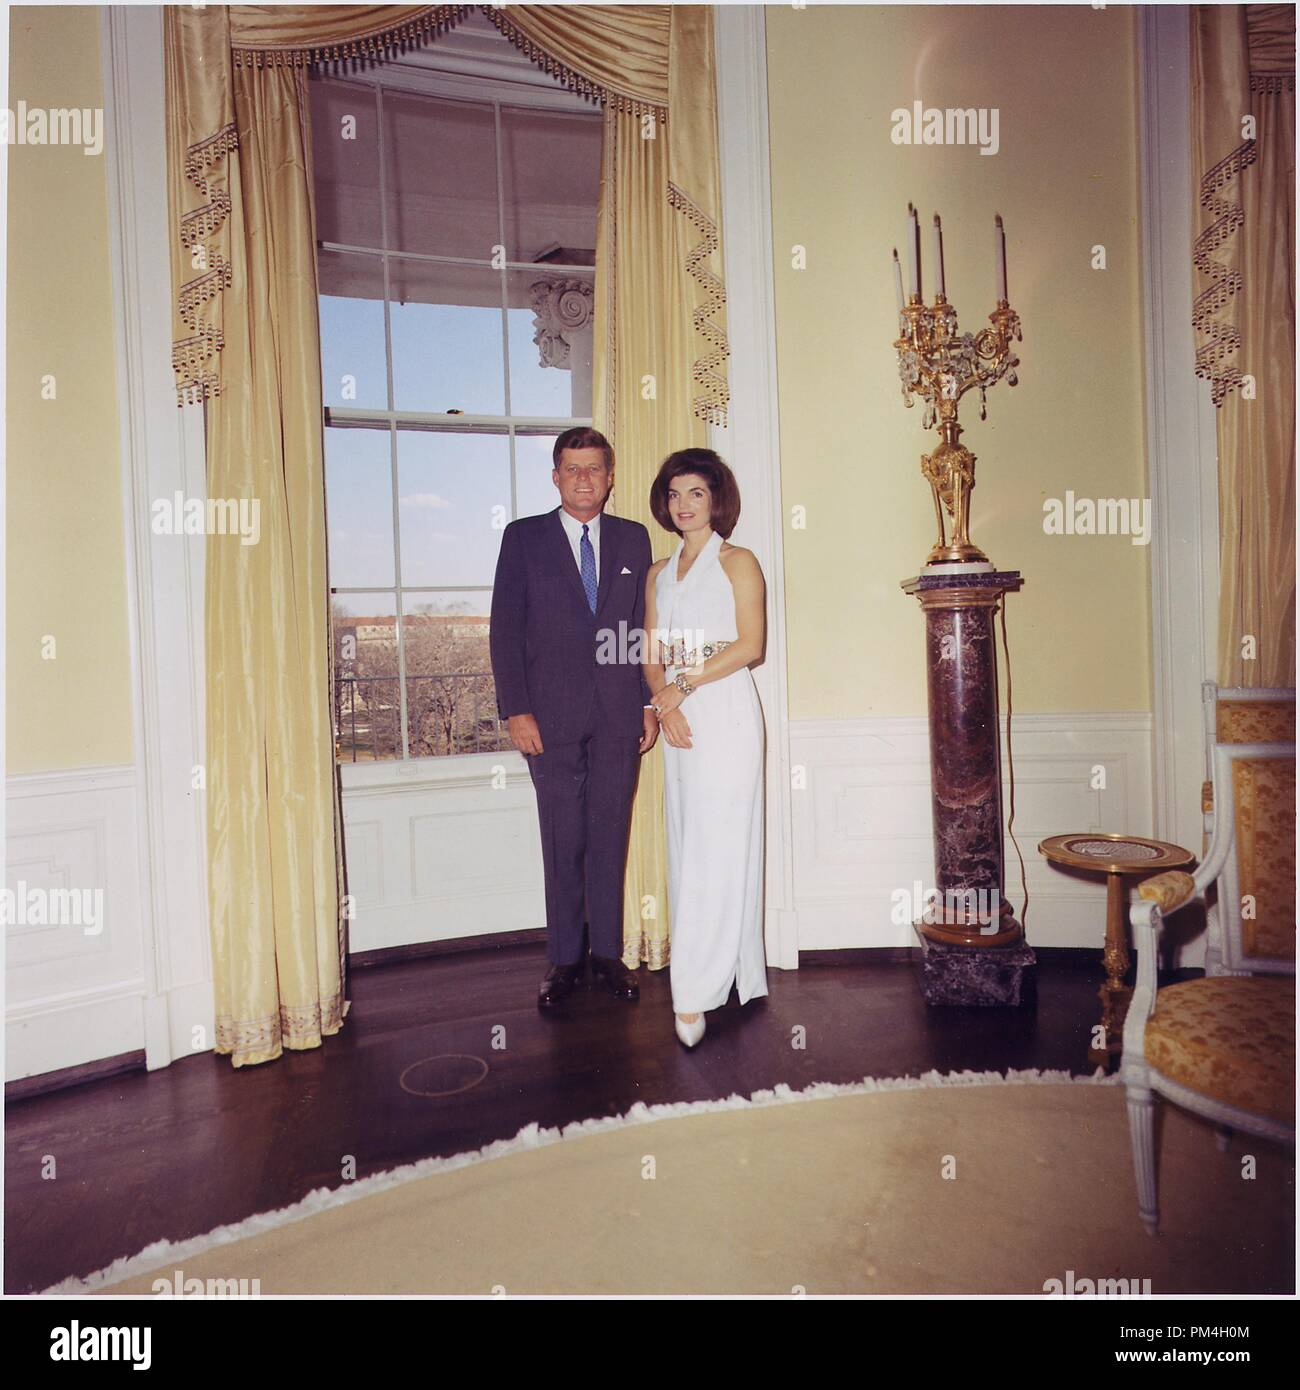 President and First Lady, Portrait Photograph. President John F. Kennedy, Mrs. Jacqueline Kennedy. White House, Yellow Oval Room, 28 March 1963   File Reference # 1003_166THA - Stock Image